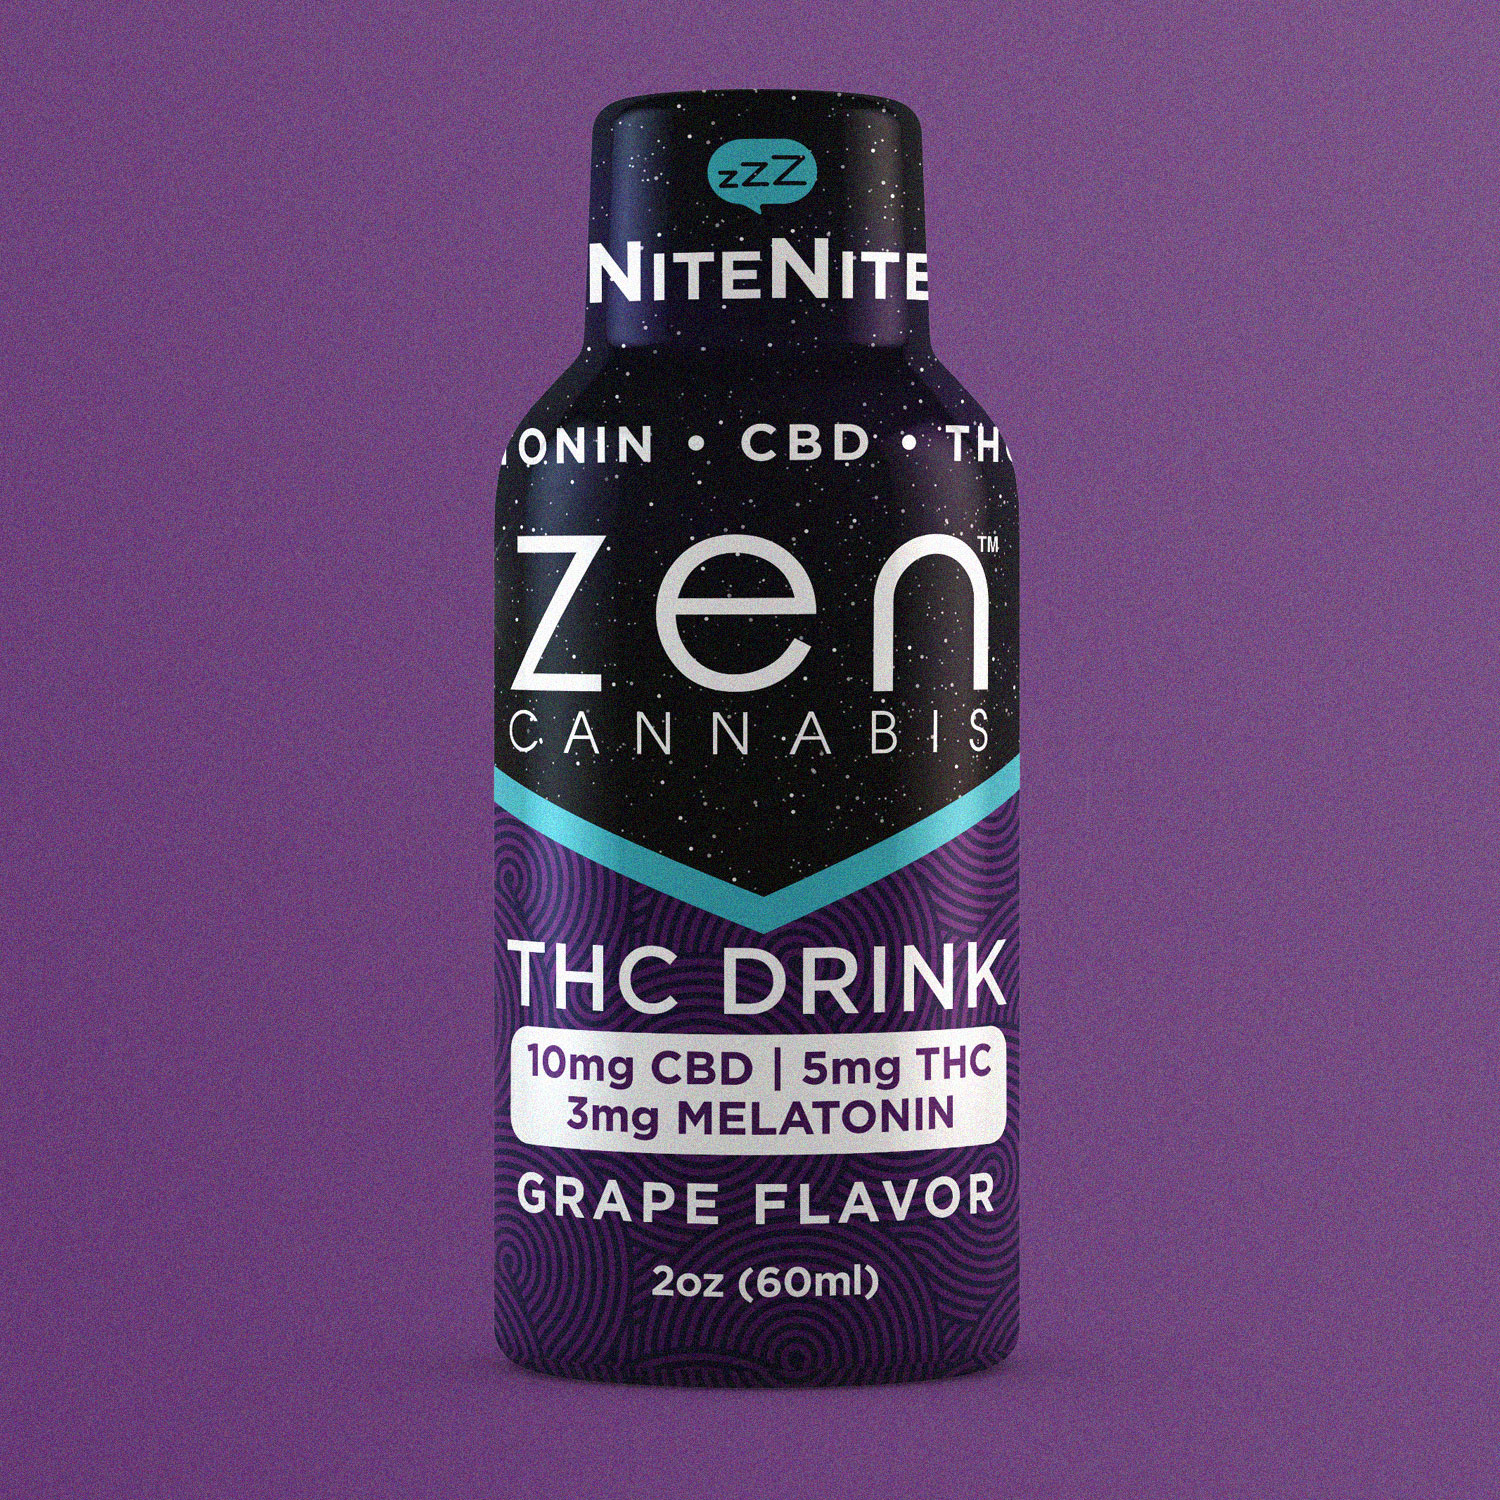 NiteNite™ INDICA    40mg CBD • 10mg THC   5mg Melatonin per bottle A two-ounce grape flavored nightcap of bliss, the NiteNite drink uses a healthy dose of CBD, a small dose of THC, and a splash of Melatonin to help you ease into restful and relaxing sleep.  2oz (60ml)